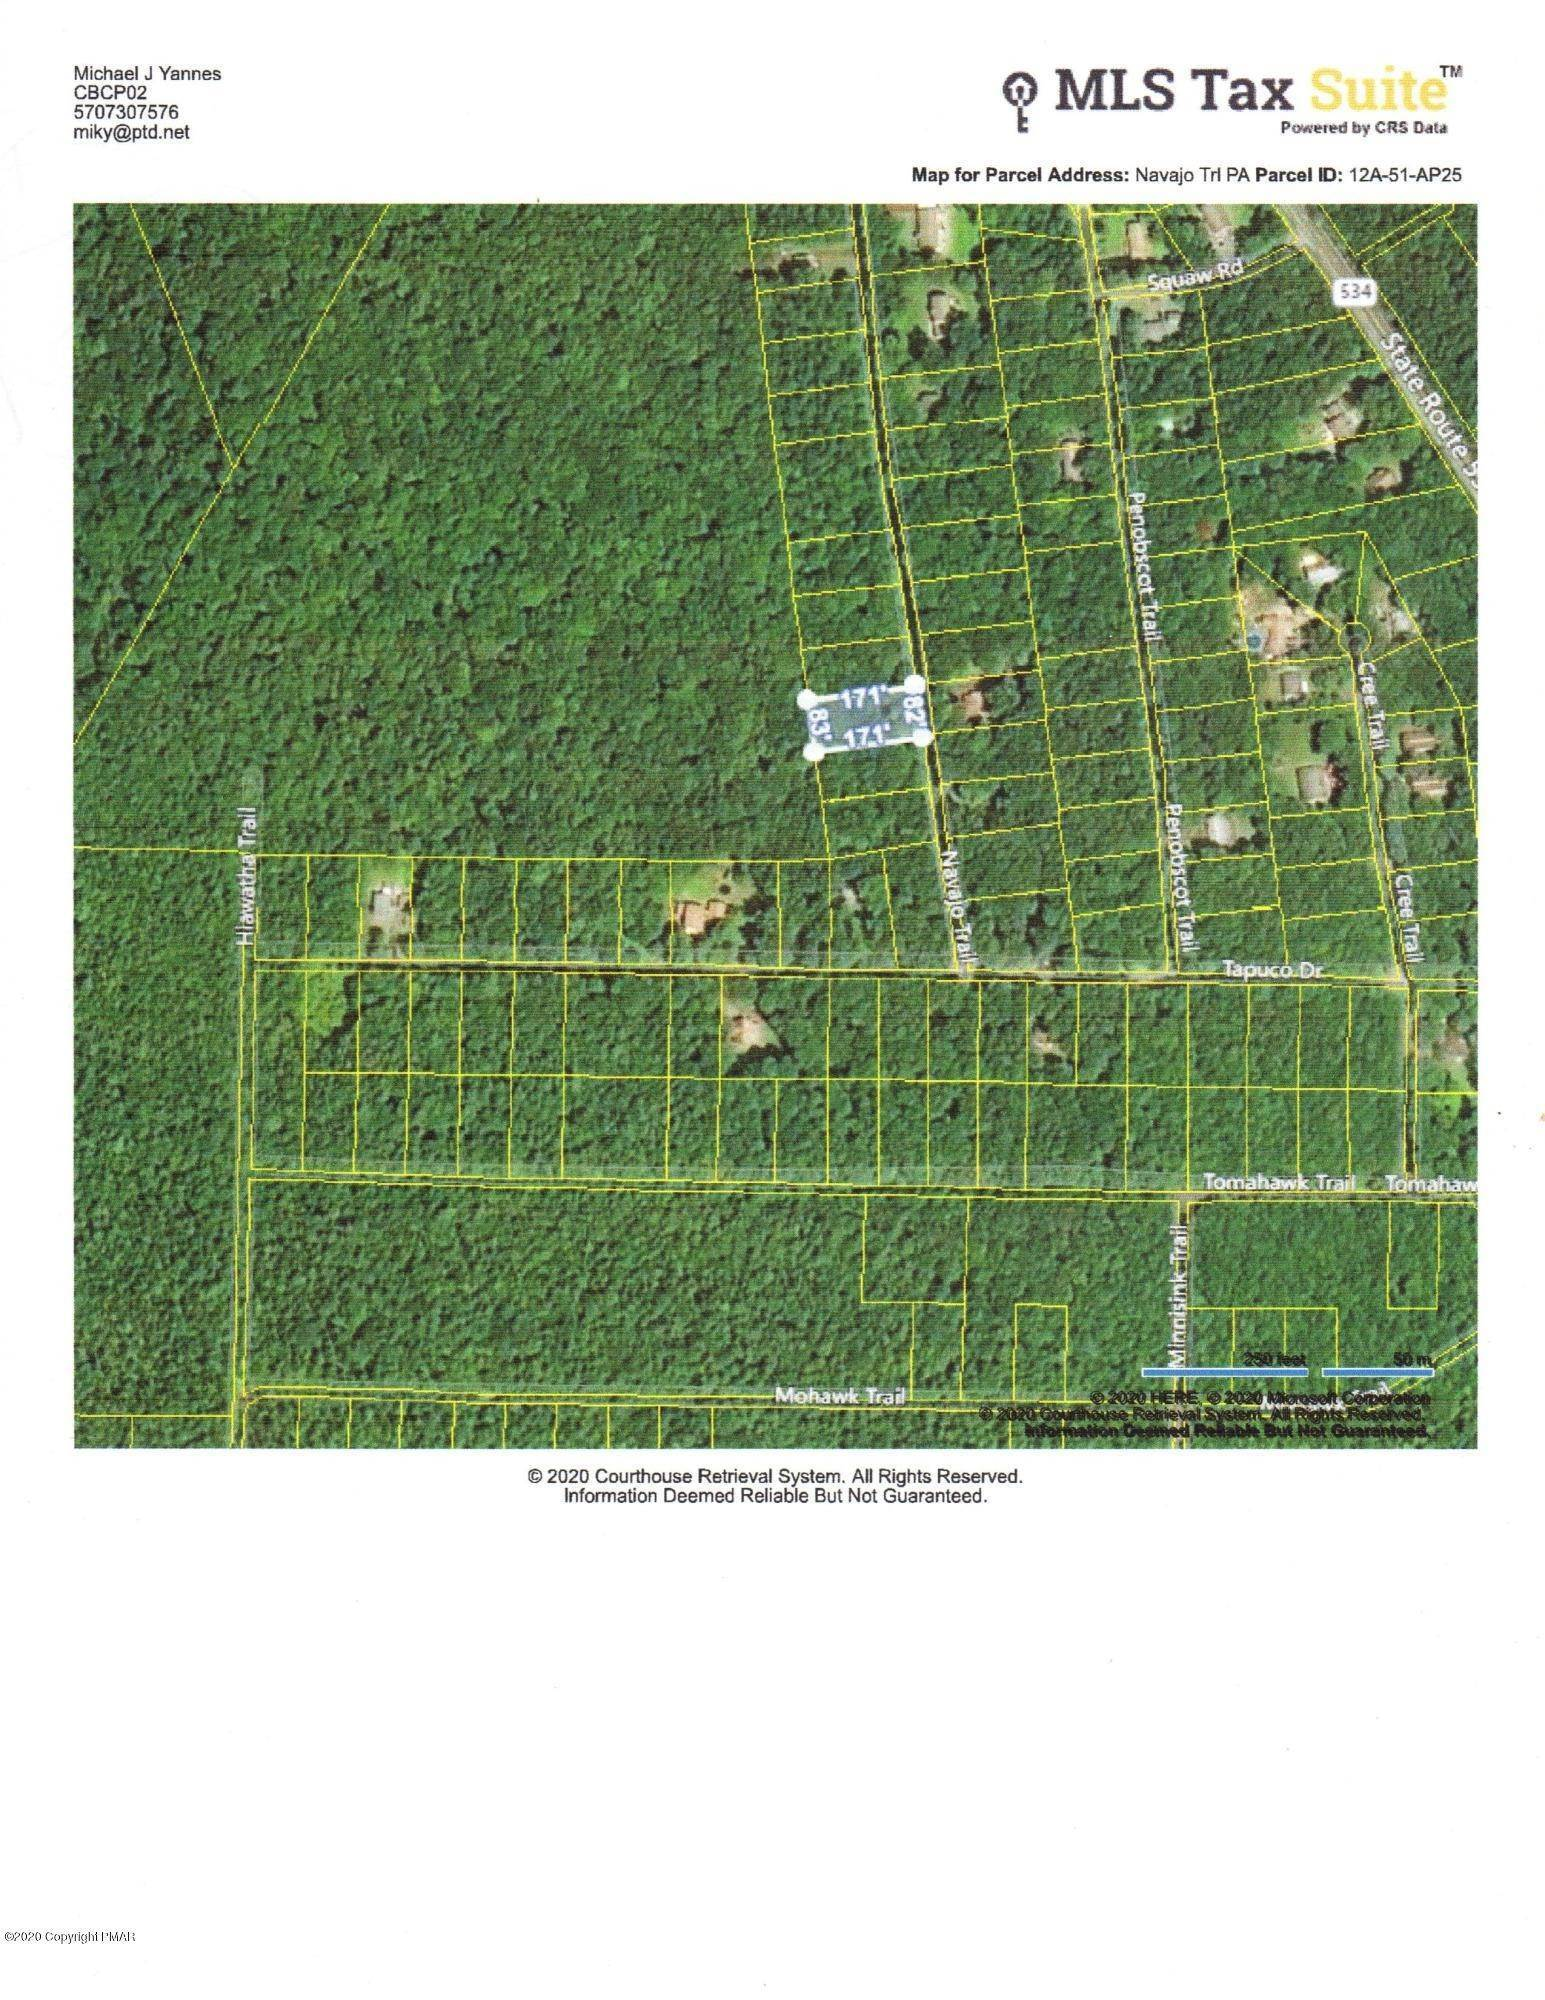 Land for Sale at 25 Navajo Trl Albrightsville, Pennsylvania 18210 United States